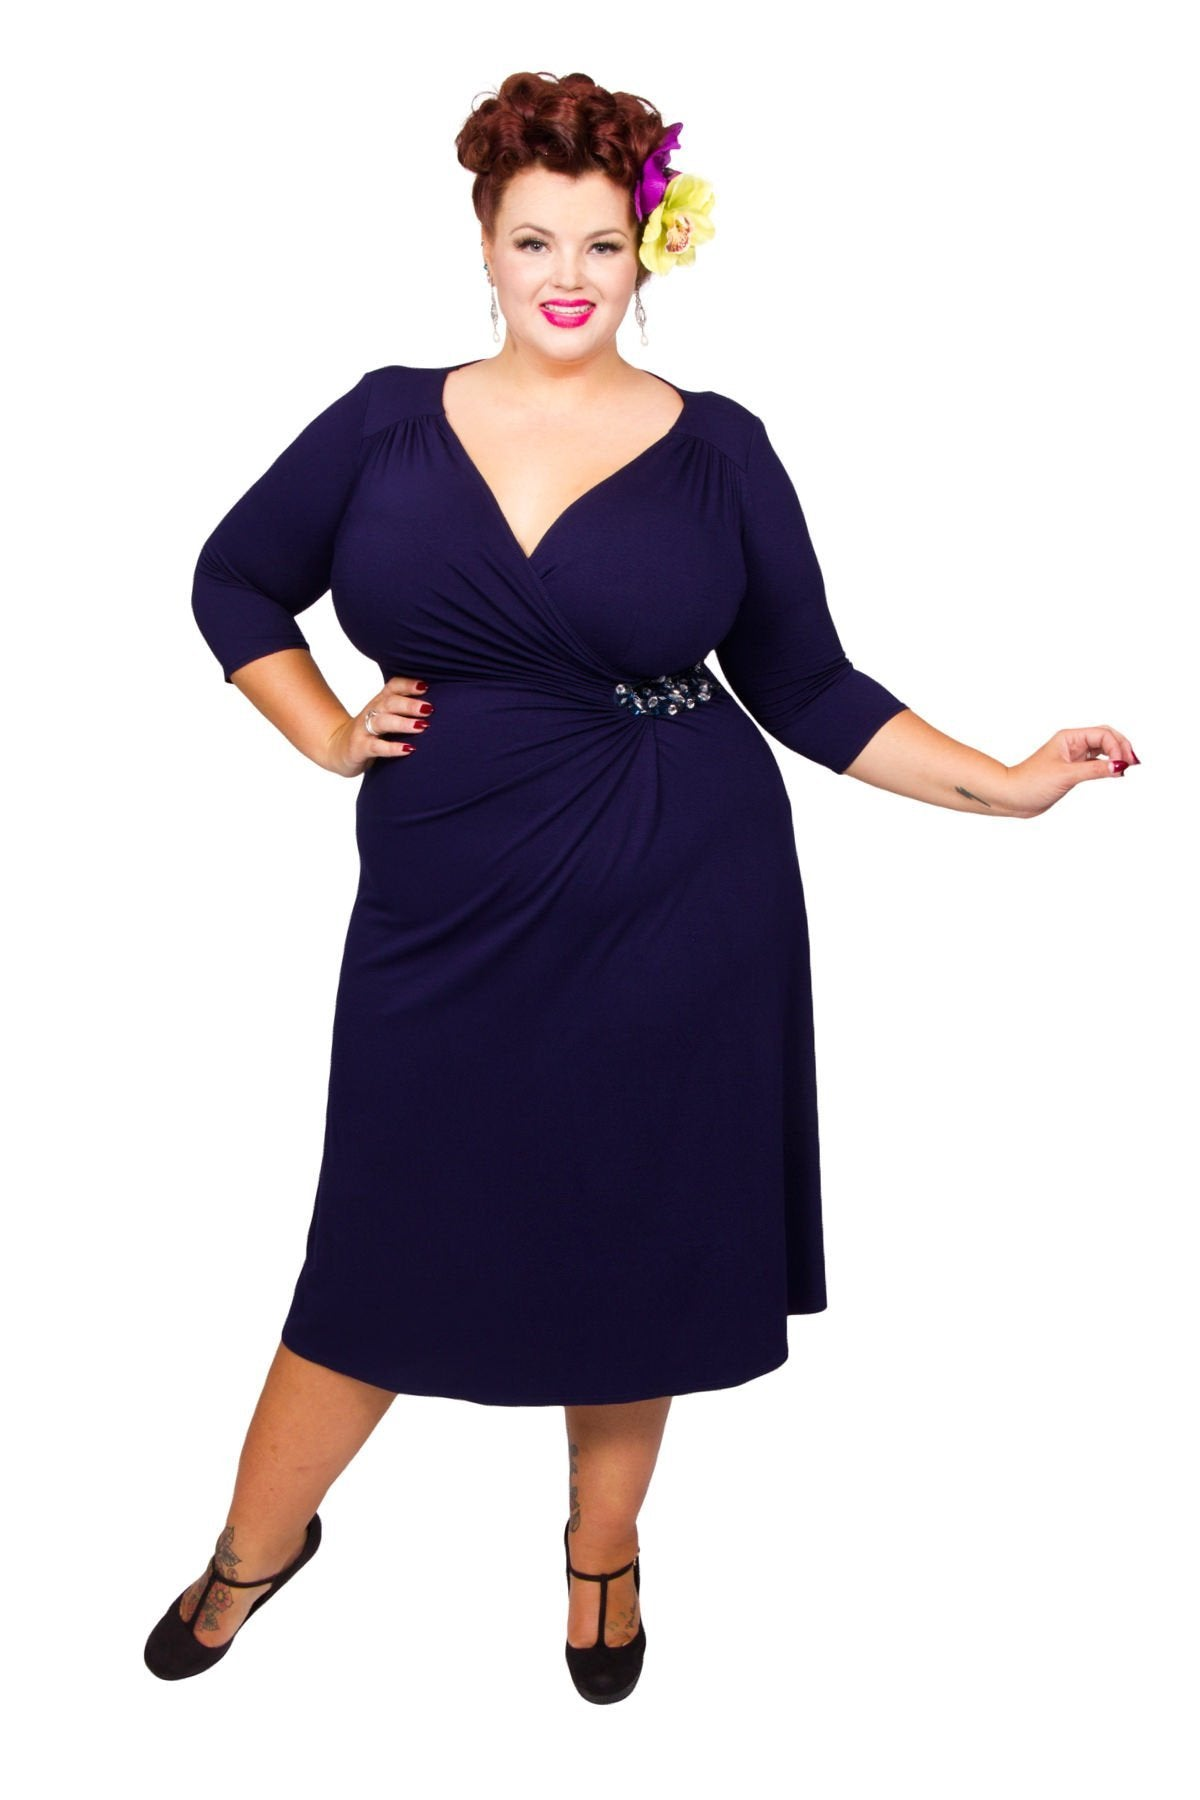 1940s Fashion Advice for Tall Women Side Beaded Jersey Dress - Midnight  14 £70.00 AT vintagedancer.com